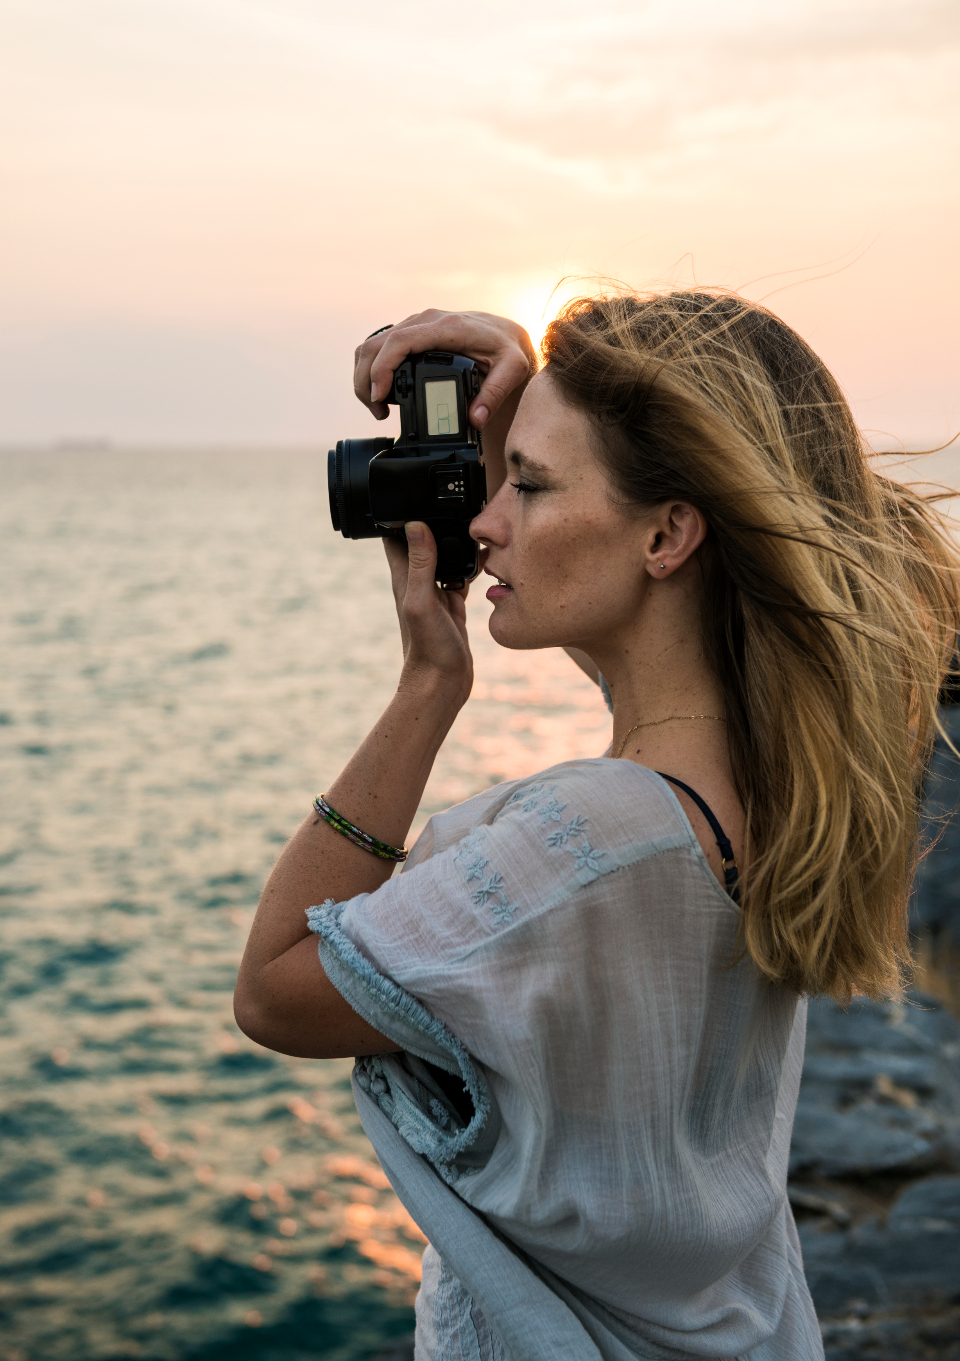 person joy holidays equipment ocean travel carefree digital coast wanderlust caucasian adventure girl traveling nature woman casual photographer trip water camera hobby journey concentrated sea tourism leisure enjoy